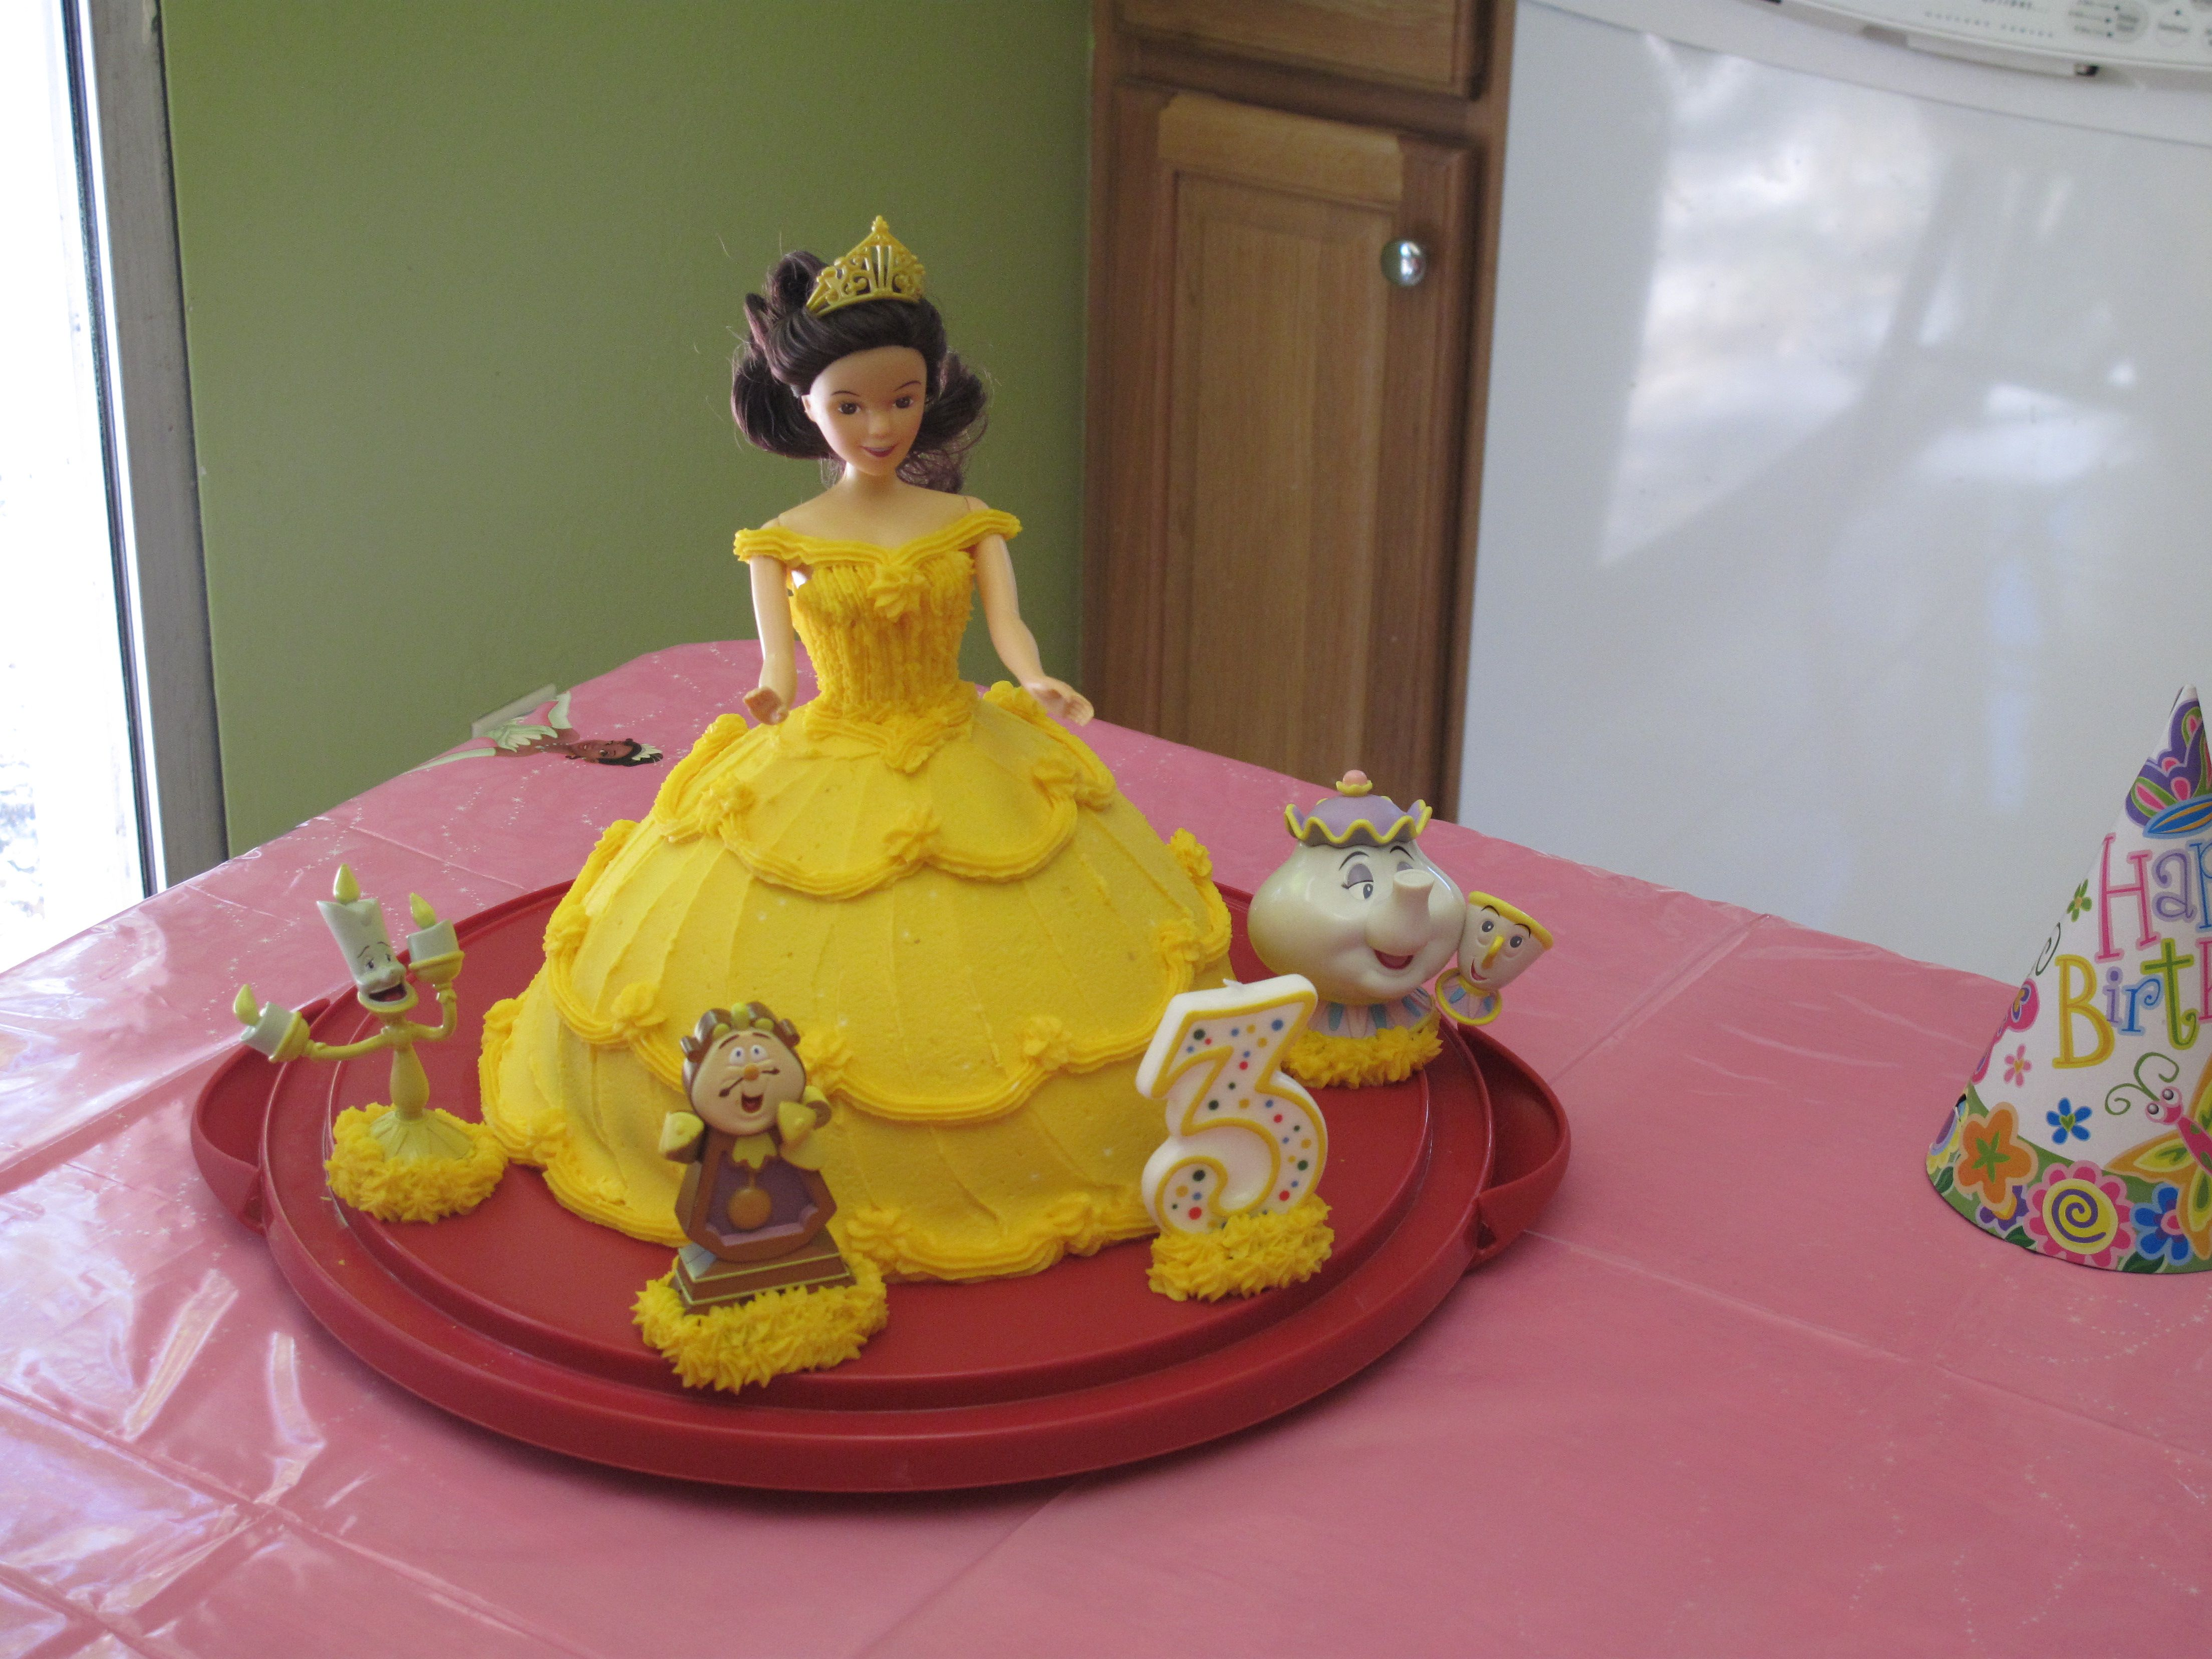 Beautiful Belle cake You can make any princess cake with a Barbie